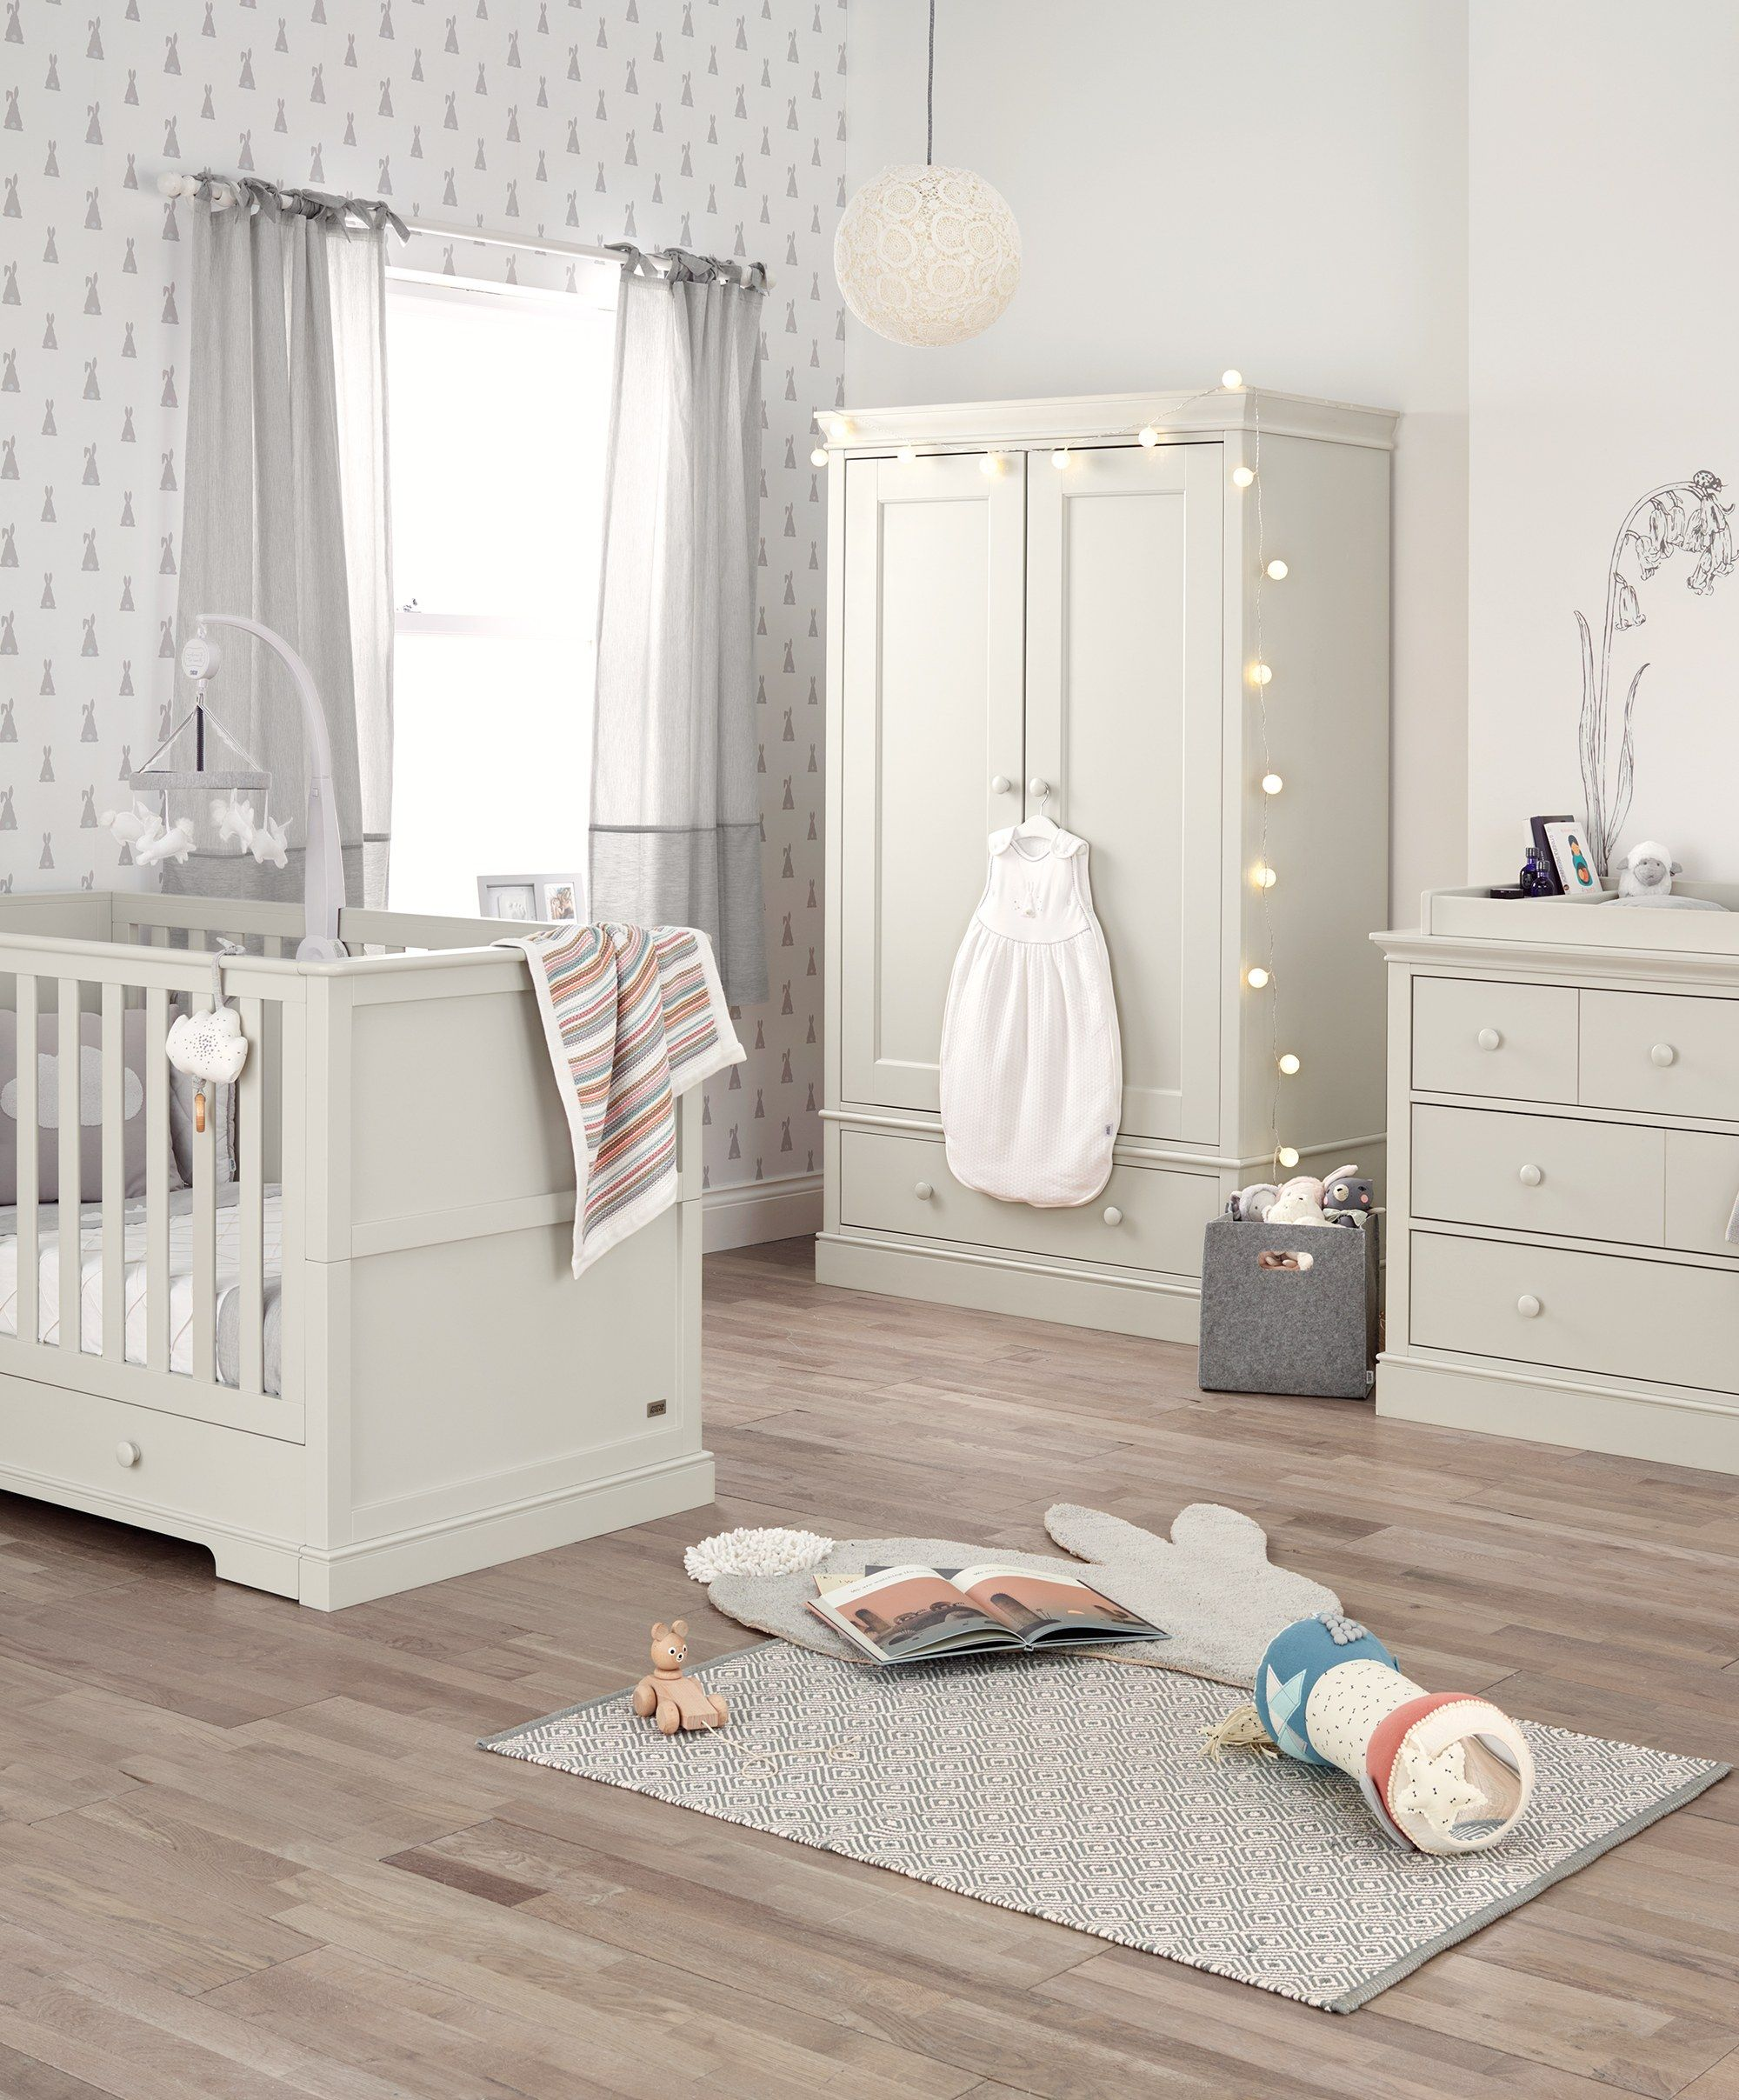 The oxford three piece furniture range is a complete nursery furniture collection the mamas